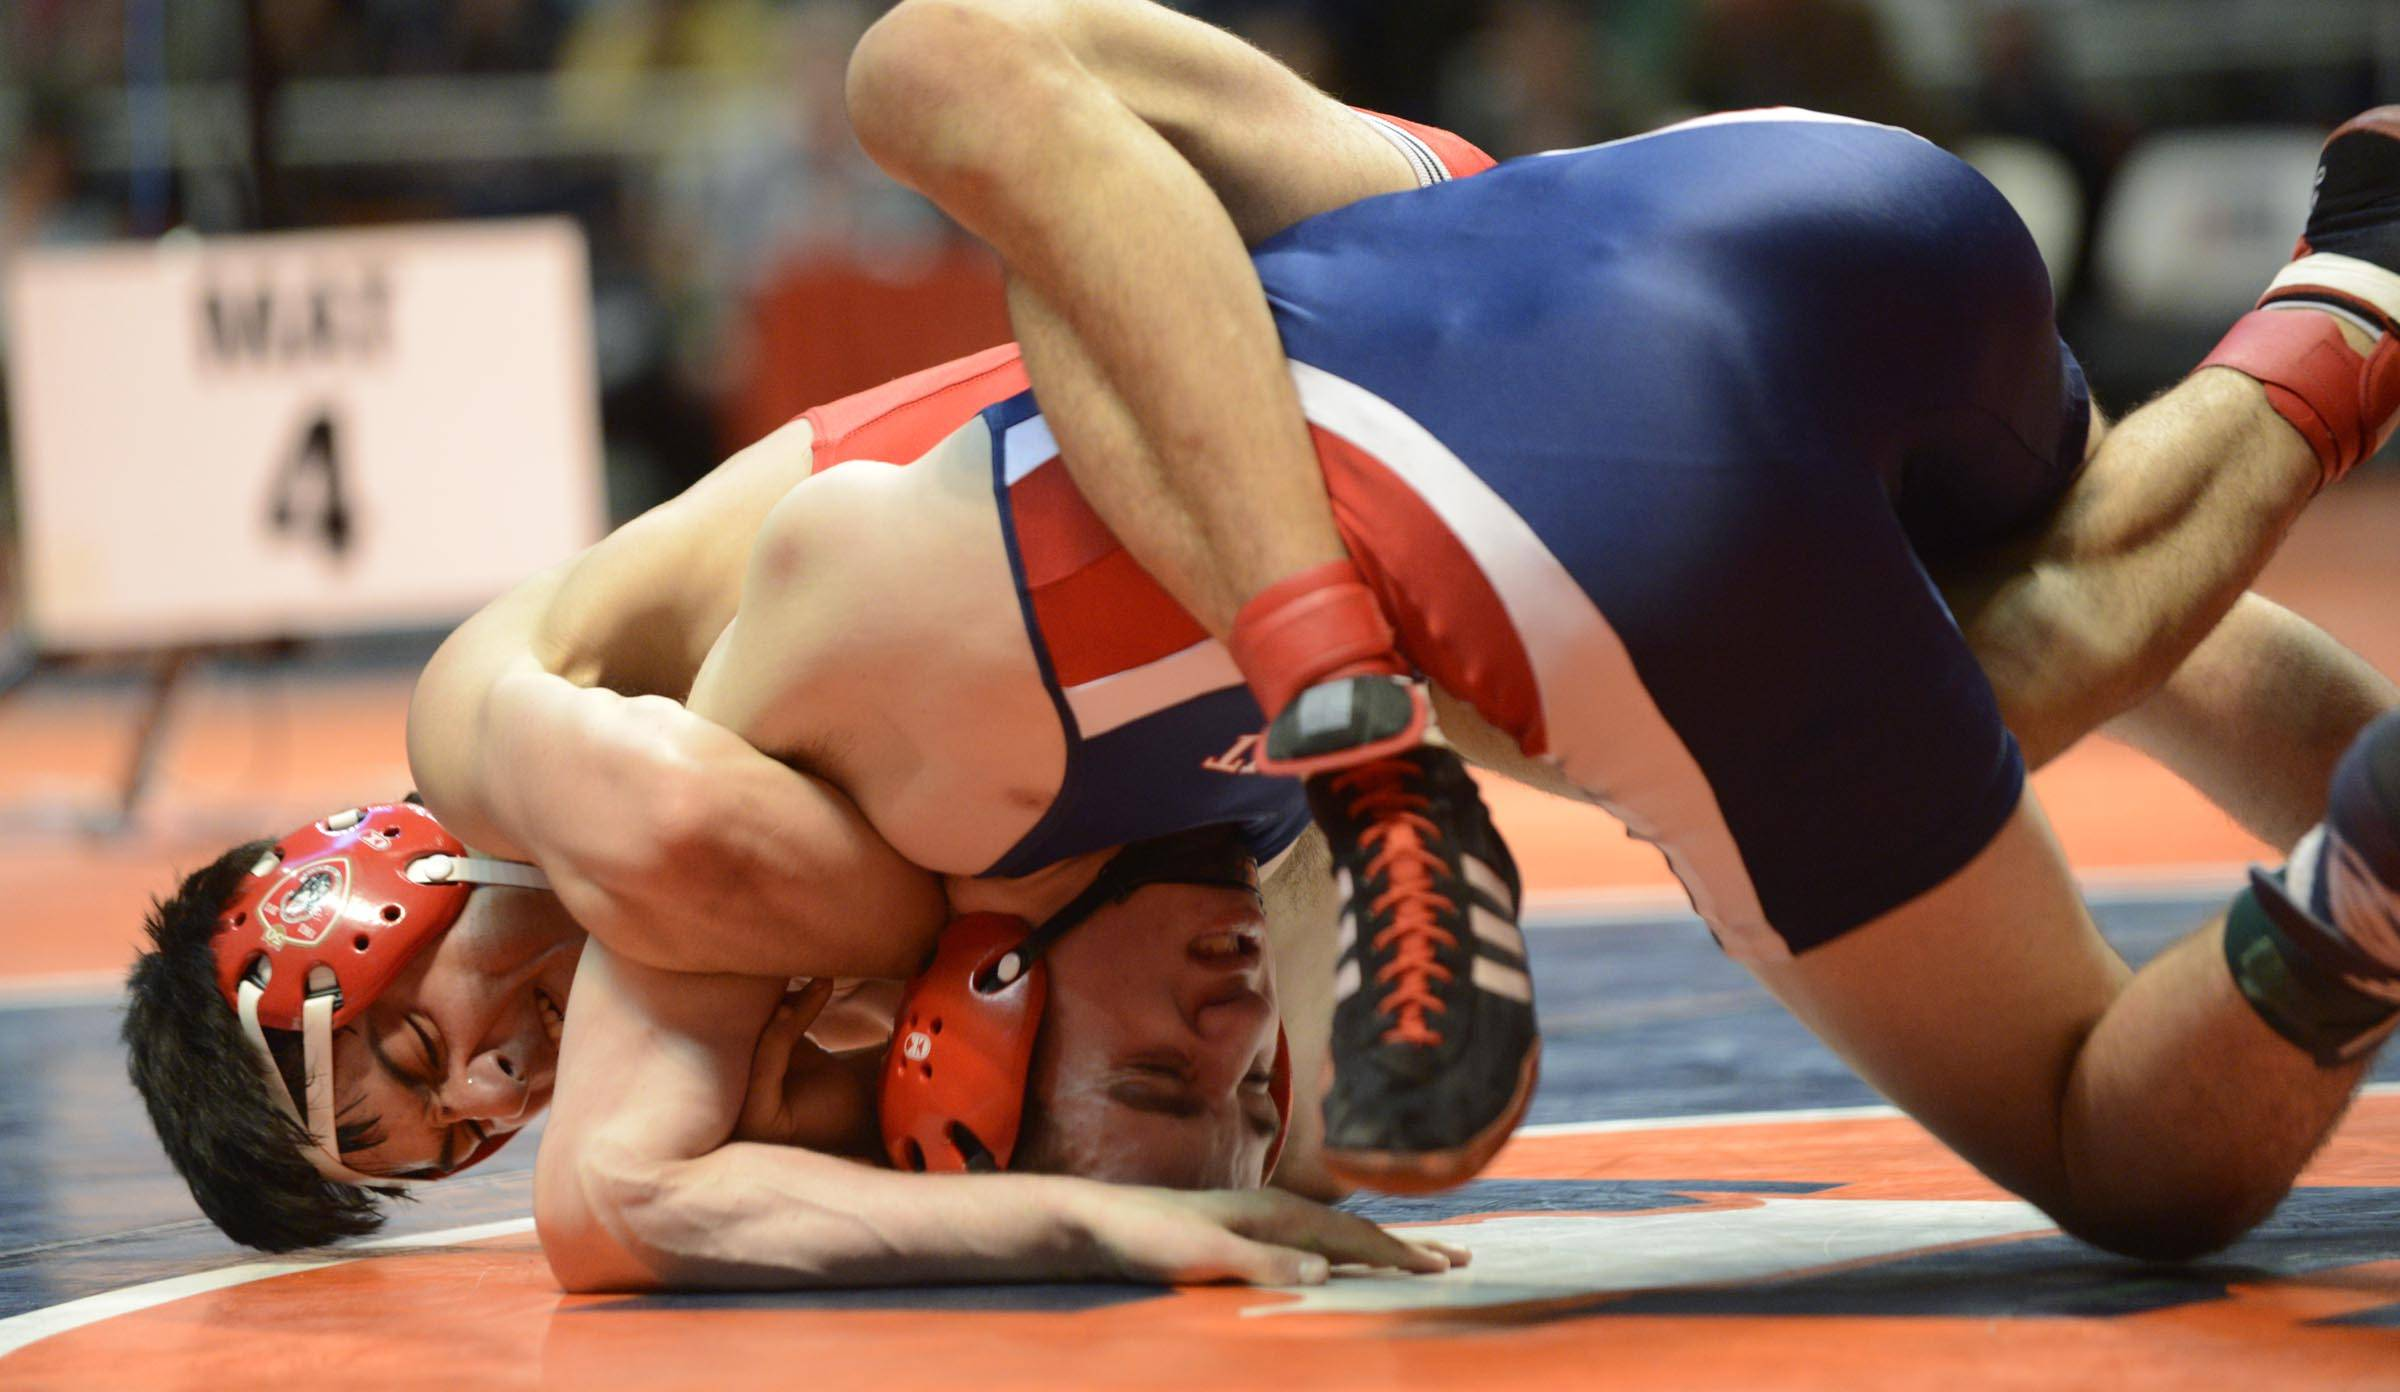 Bobby Alexander of Conant High School, bottom, competes against Ameen Hamdan of Marist High School Saturday in the 132-pound weight class third place match of the wrestling IHSA Class 3A state tournament at State Farm Center in Champaign.